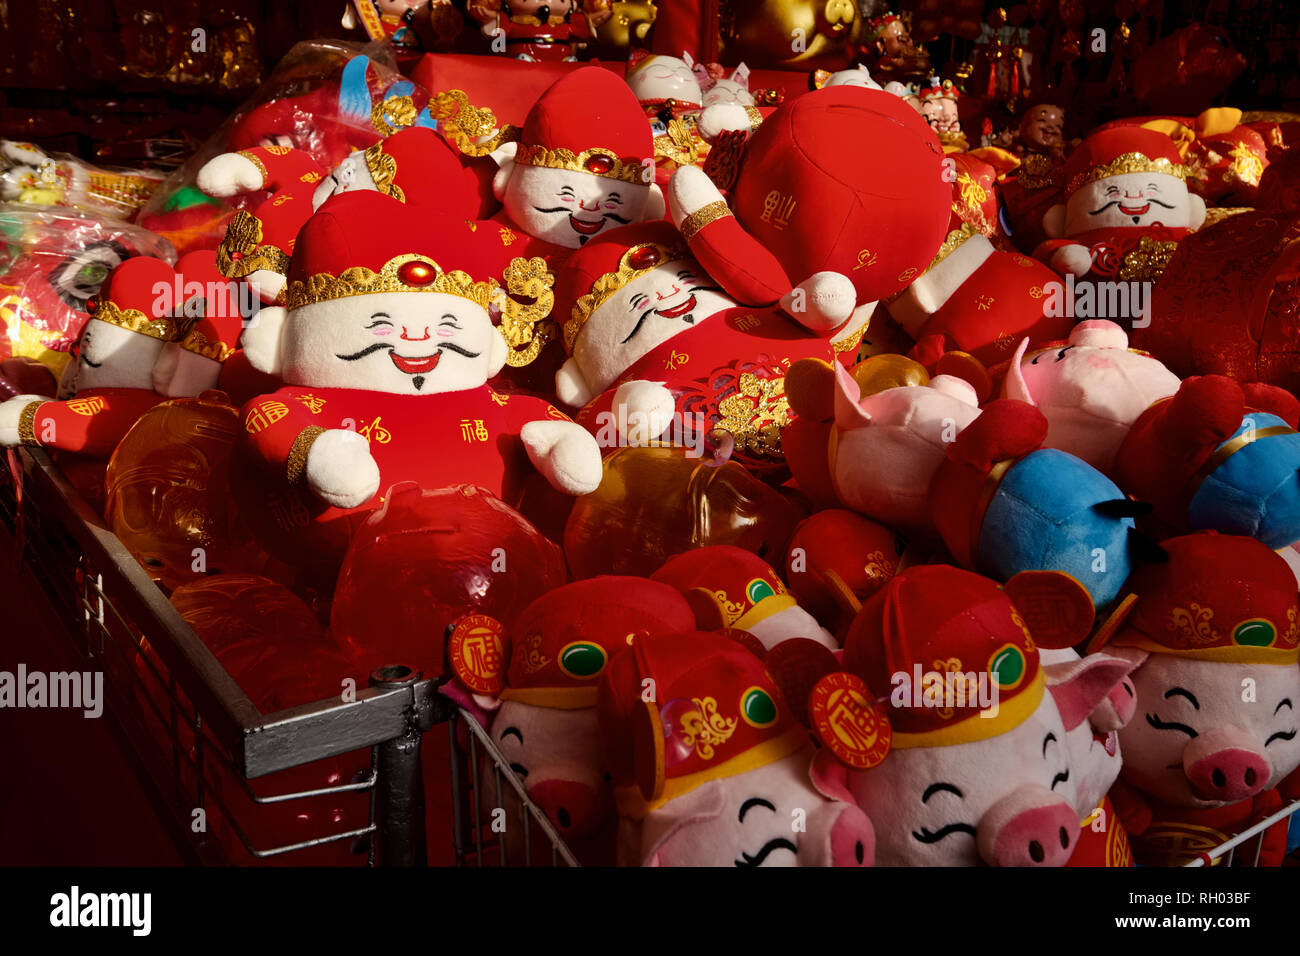 Red-clothed dolls for sale in Singapore on occasion of Chinese New Year; among Chinese, the color red is deemed auspicious - Stock Image